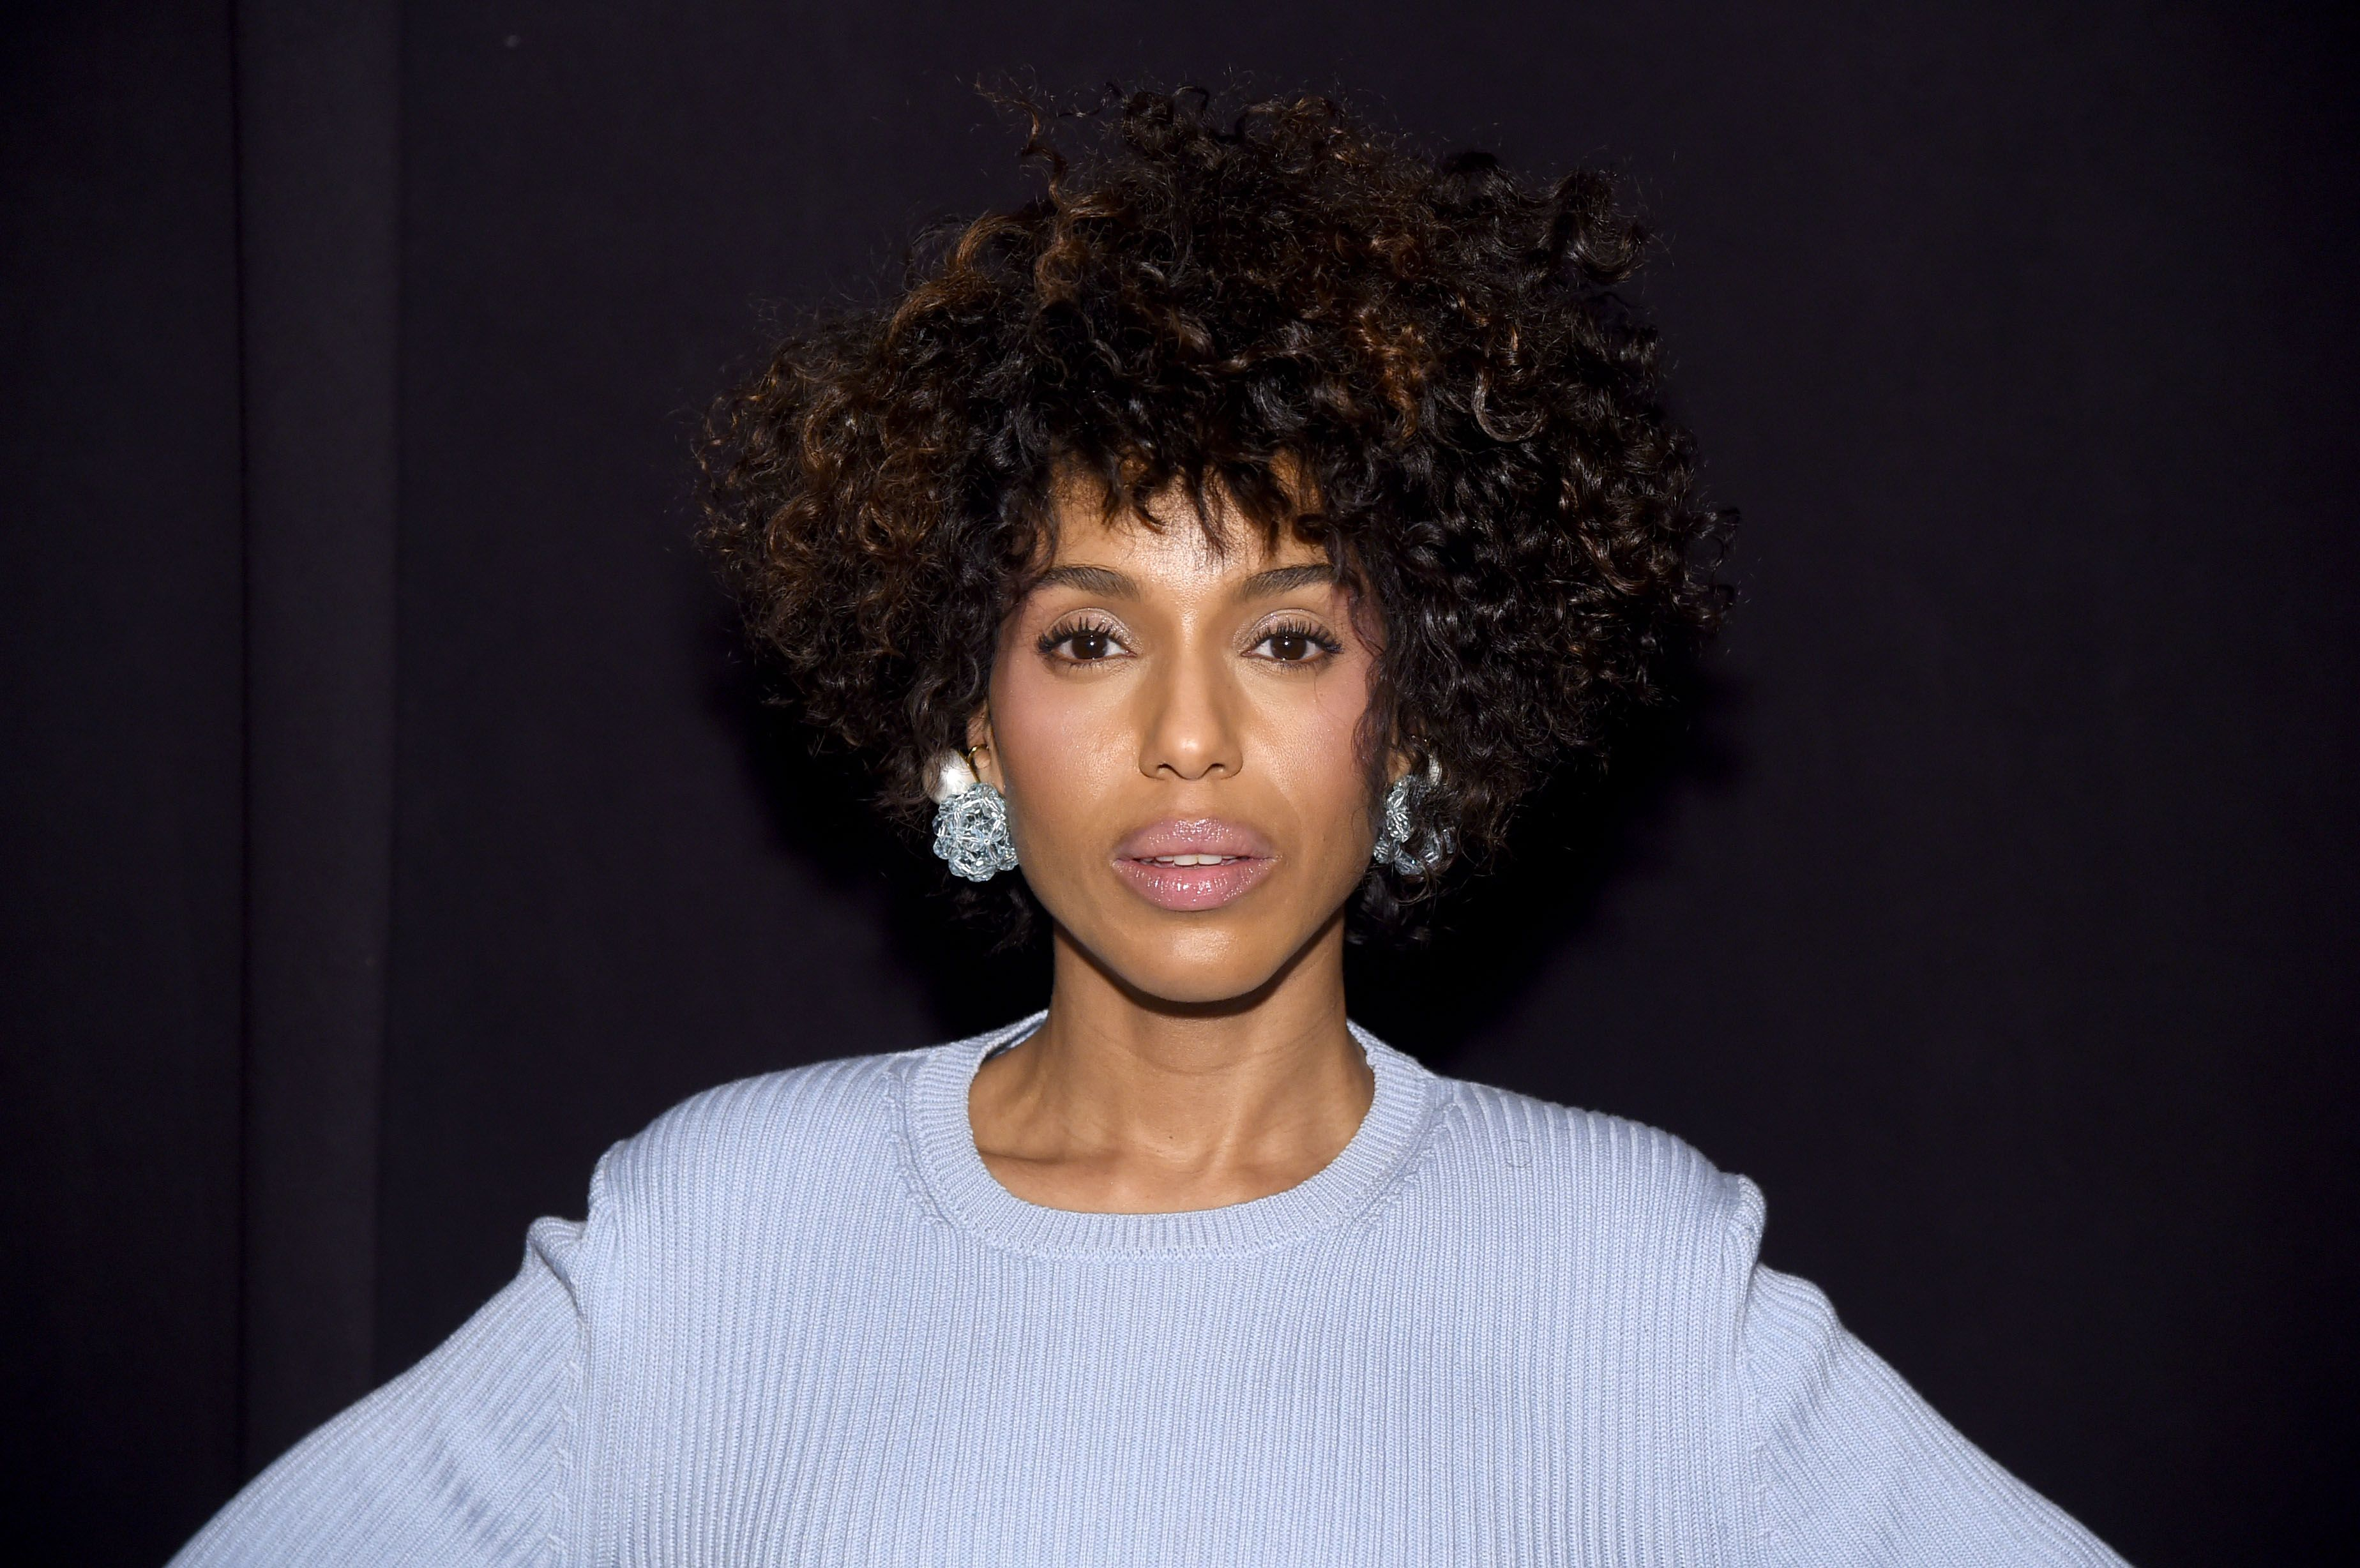 Kerry Washington at the Marc Jacobs Fall 2019 Show at Park Avenue Armory in New York City on February 13, 2019. | Photo: Getty Images